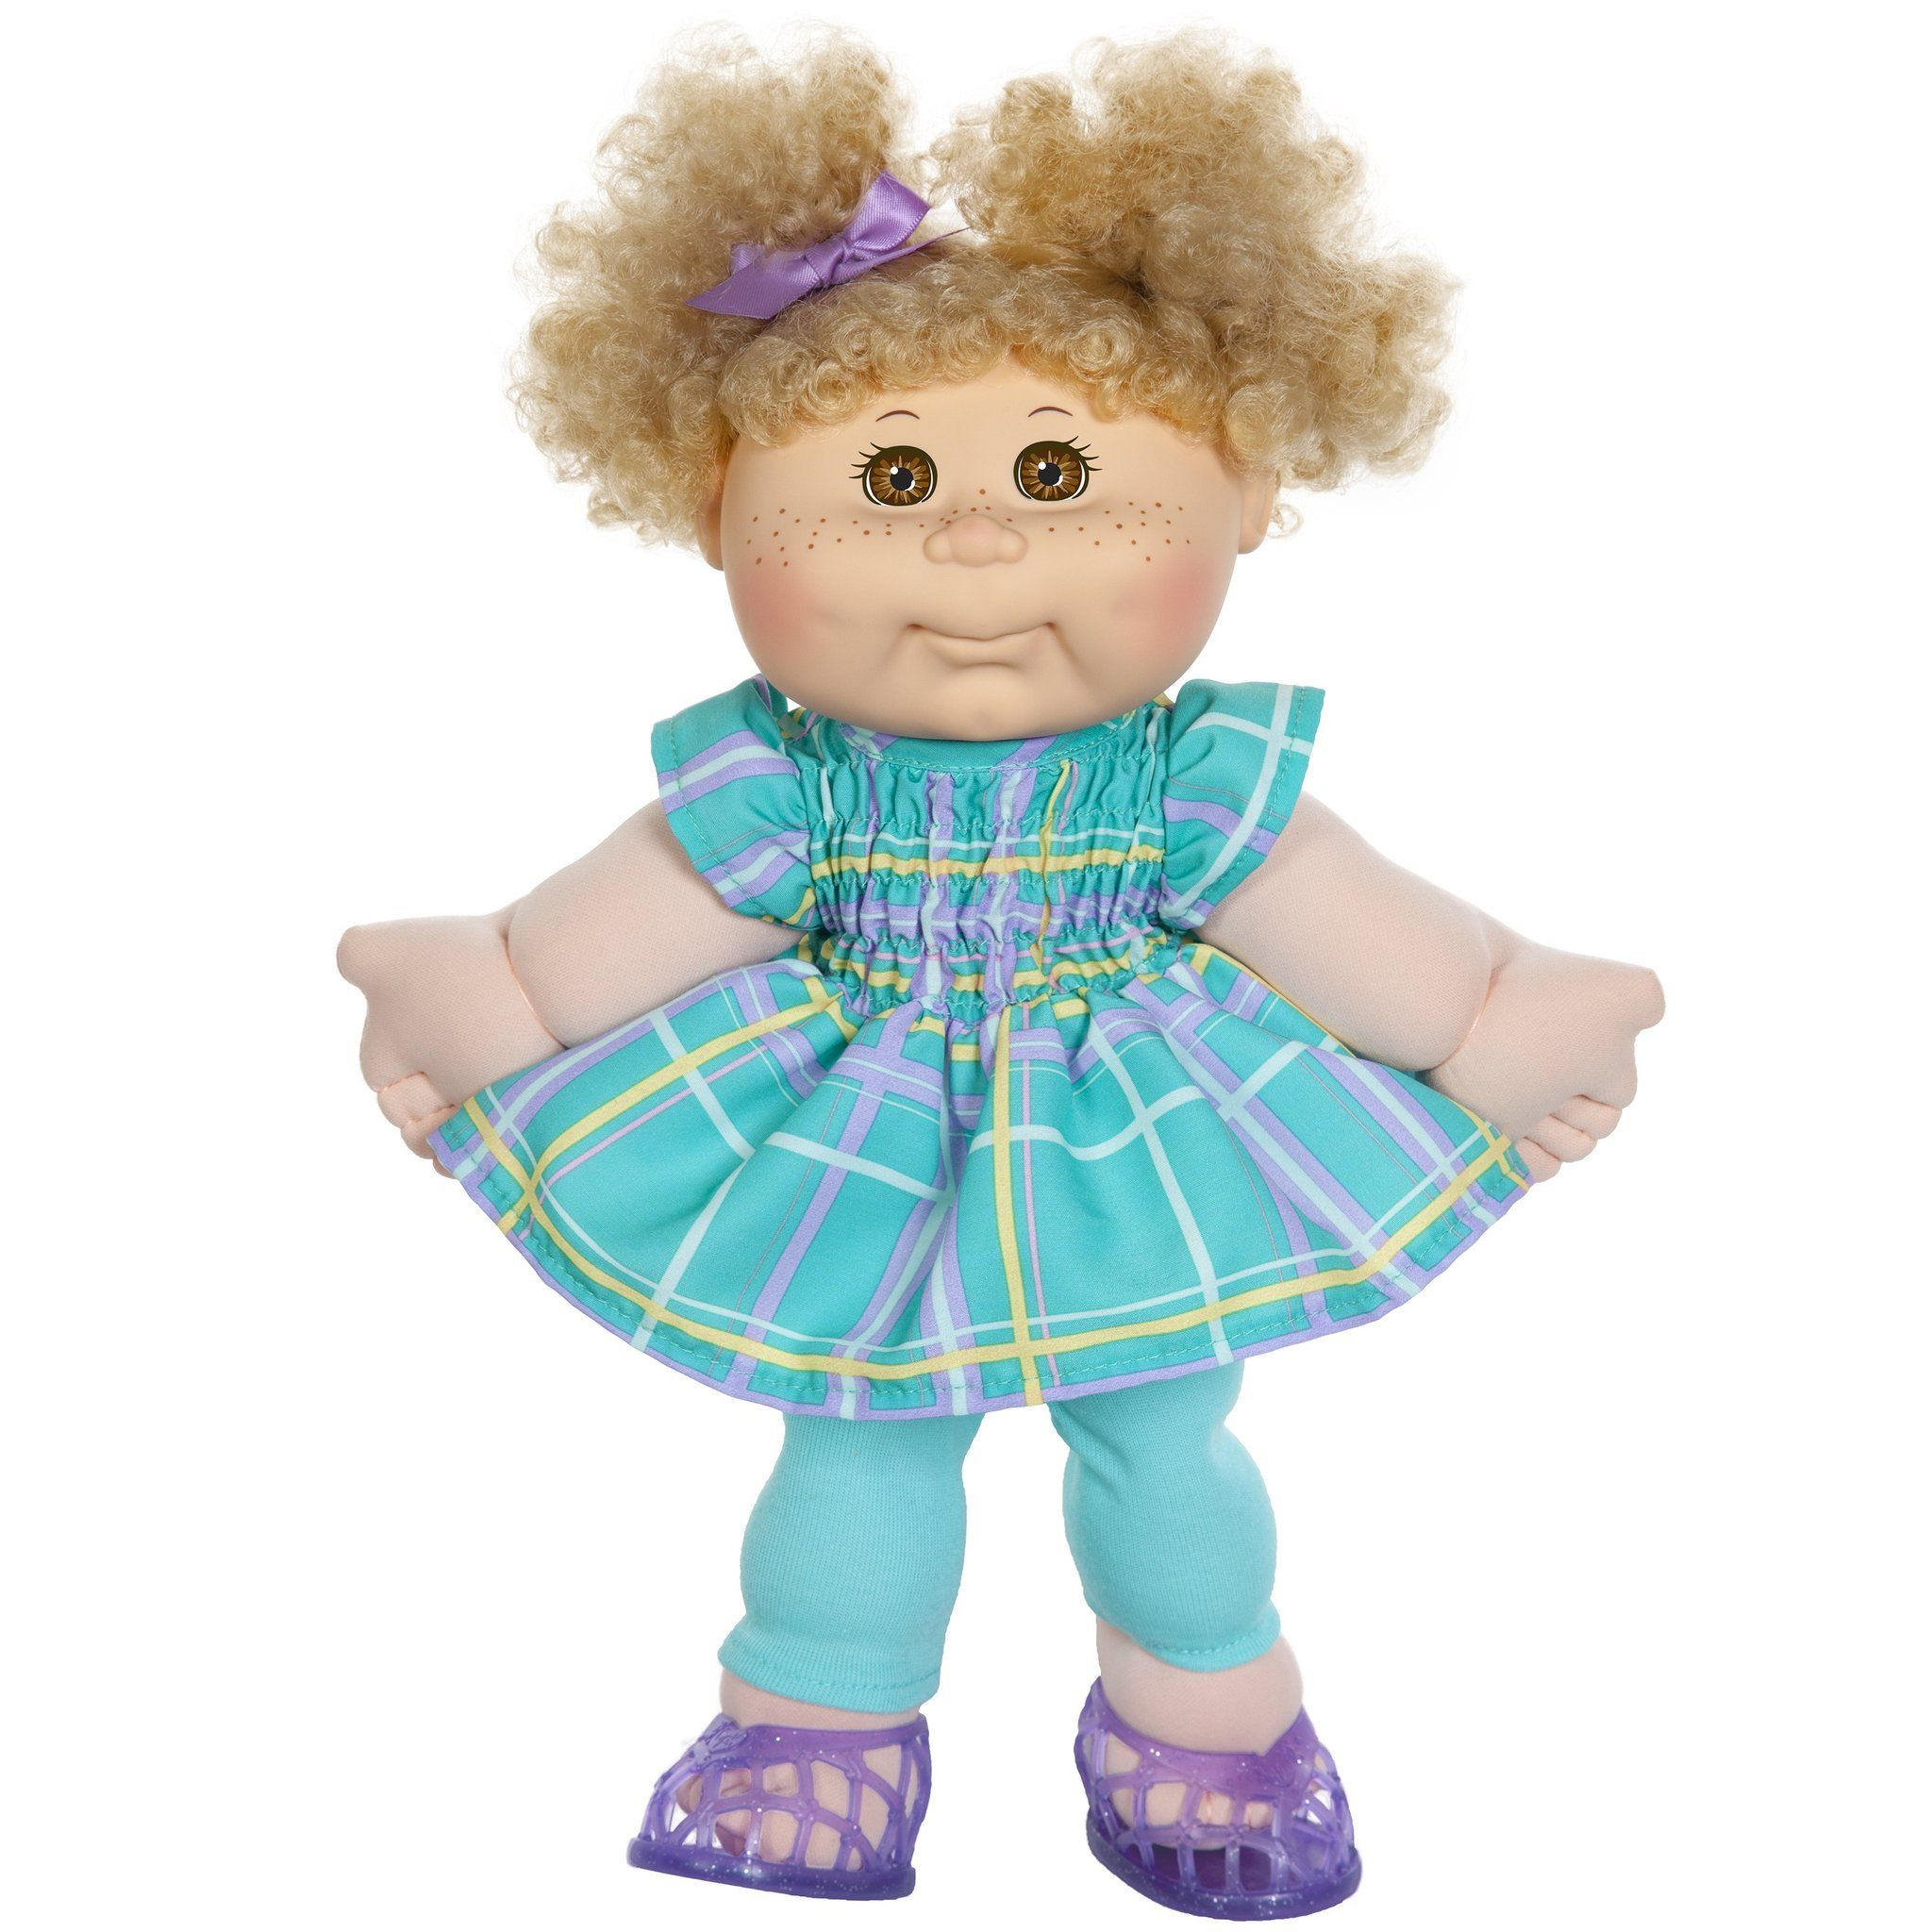 35th Anniversary 14 Inch Kid Cabbage Patch Kids Store Cabbage Patch Kids Cabbage Patch Kids